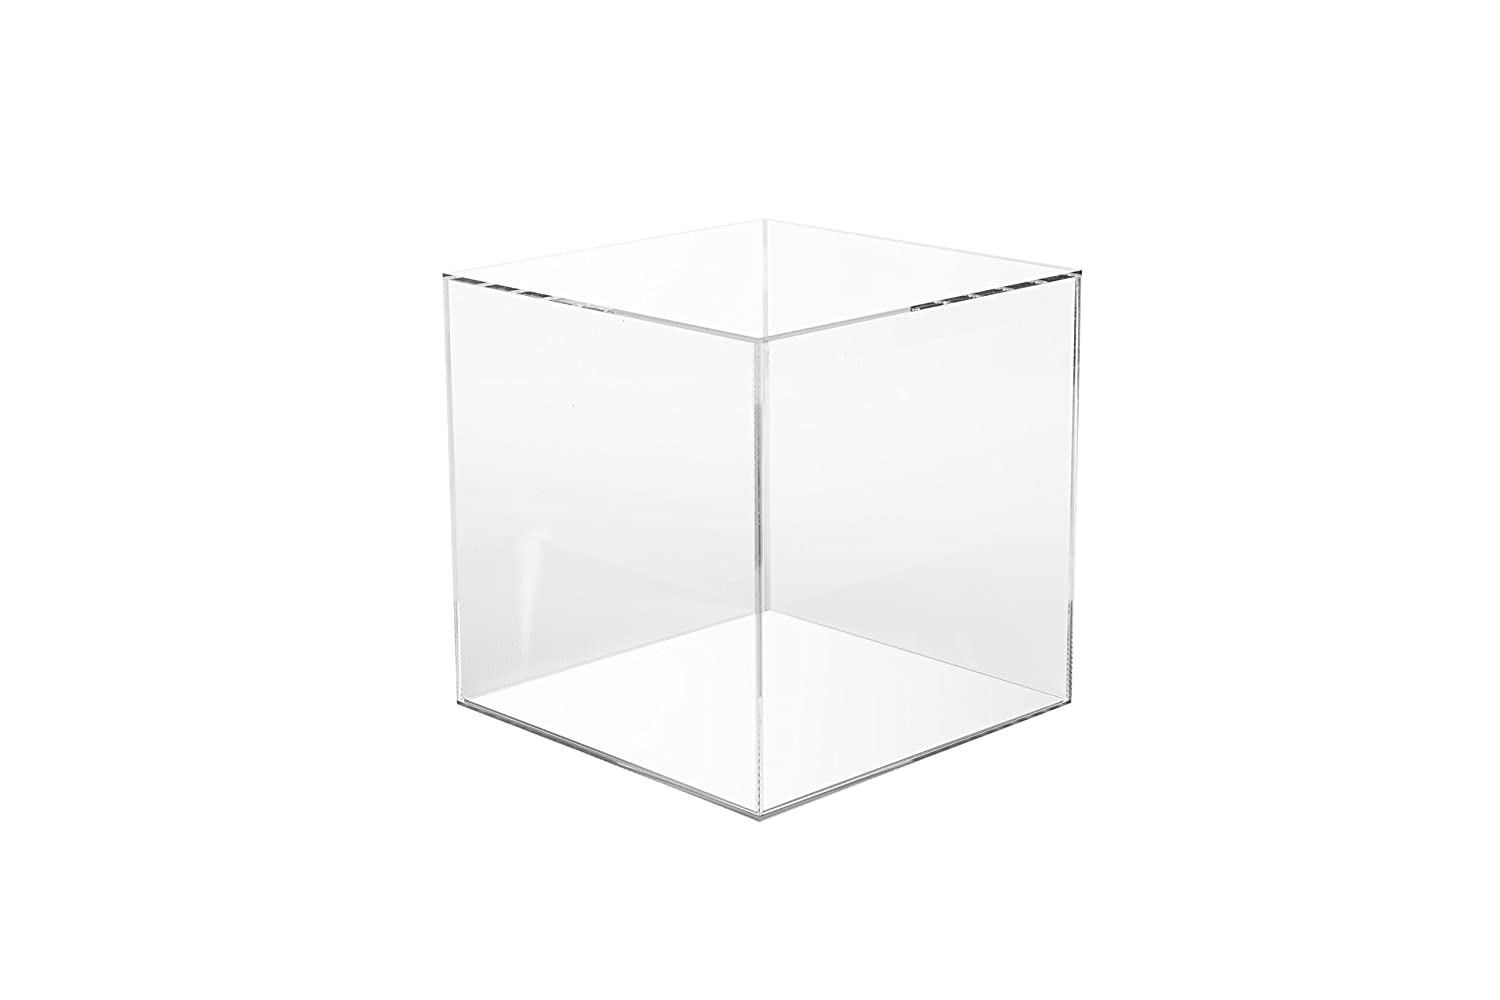 200 MM  5 SIDED CLEAR ACRYLIC PERSPEX   DISPLAY CUBE